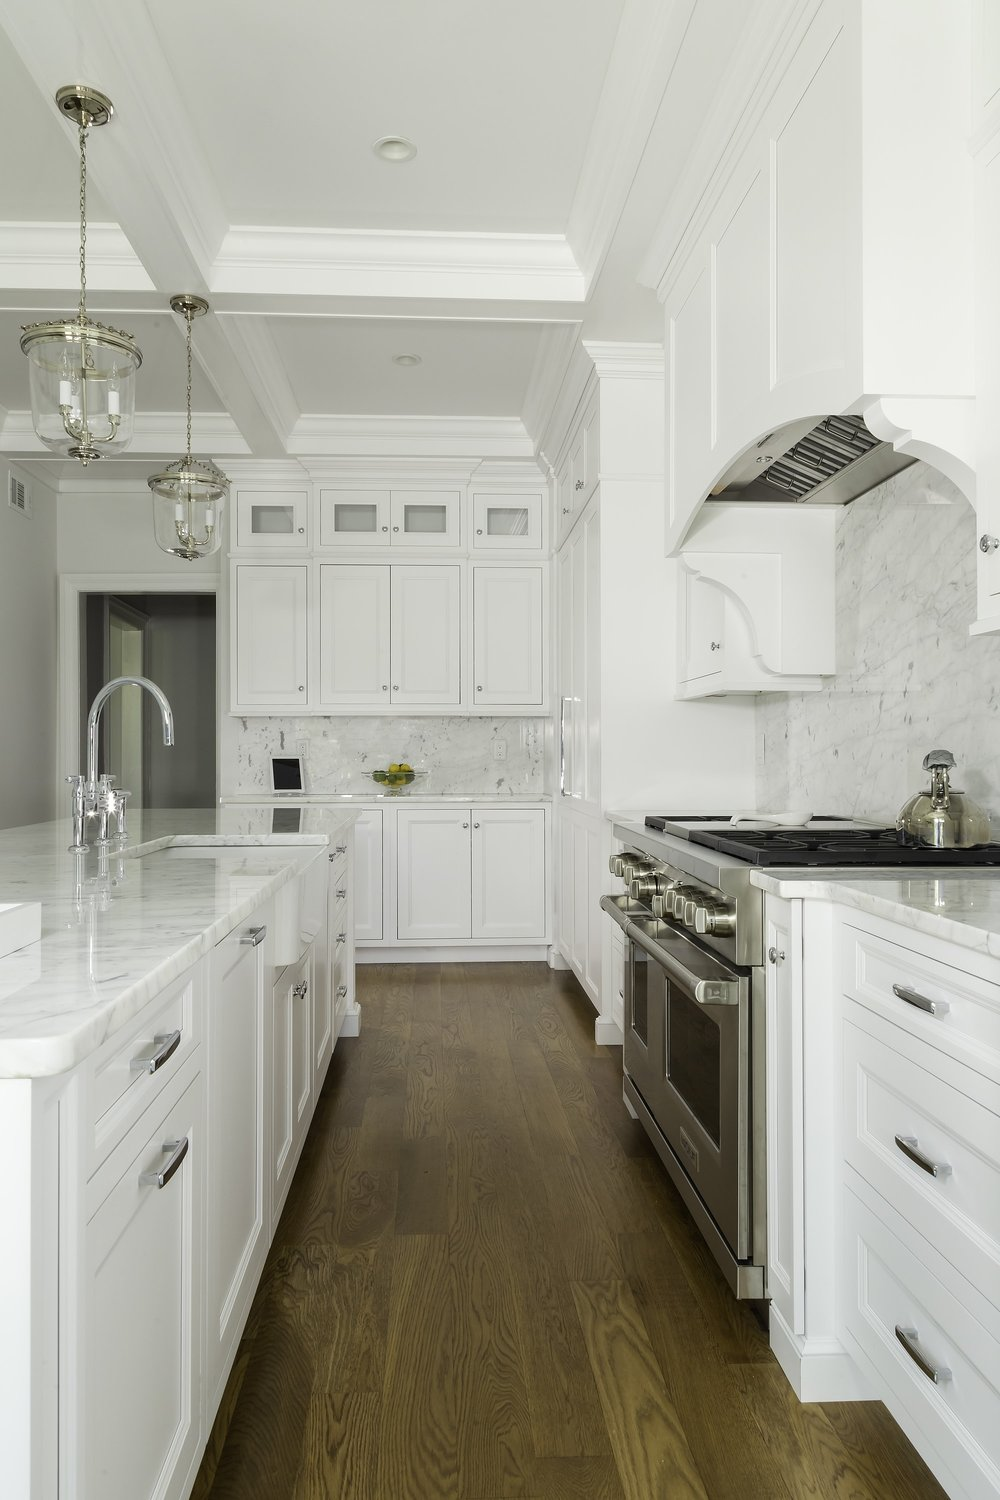 Transitional style kitchen with upper cabinet and pull out drawers